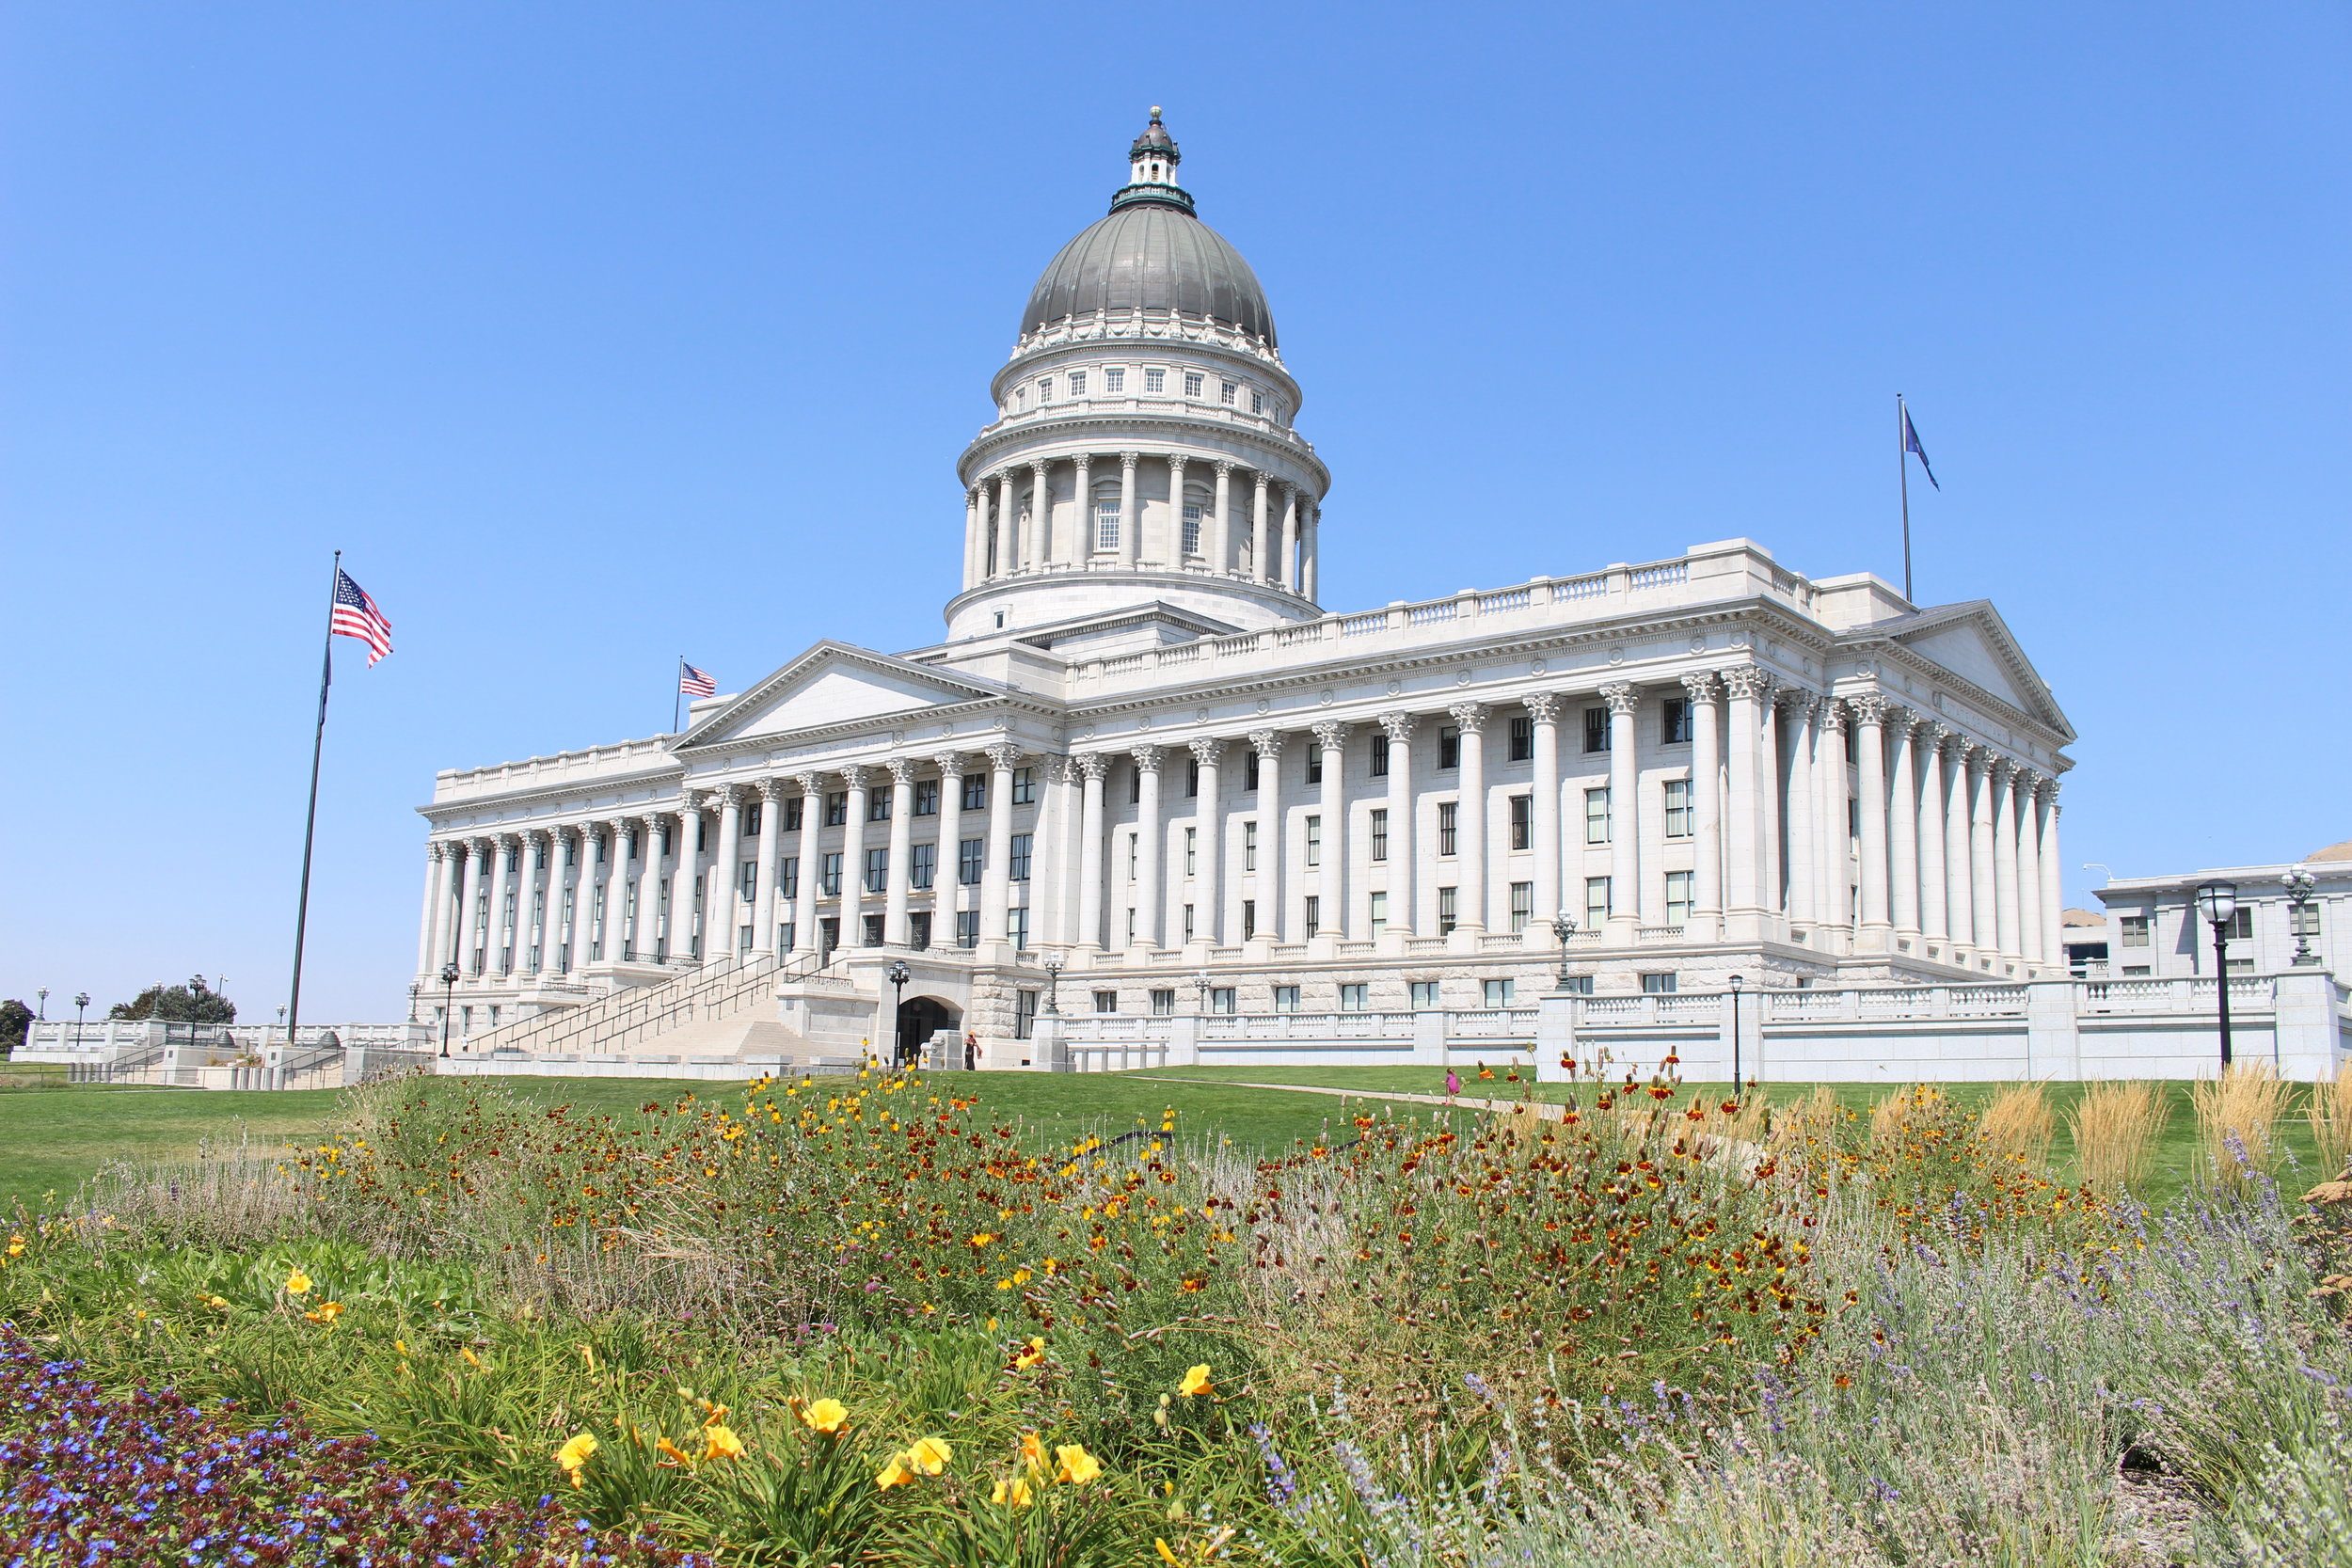 The Utah State Capitol building